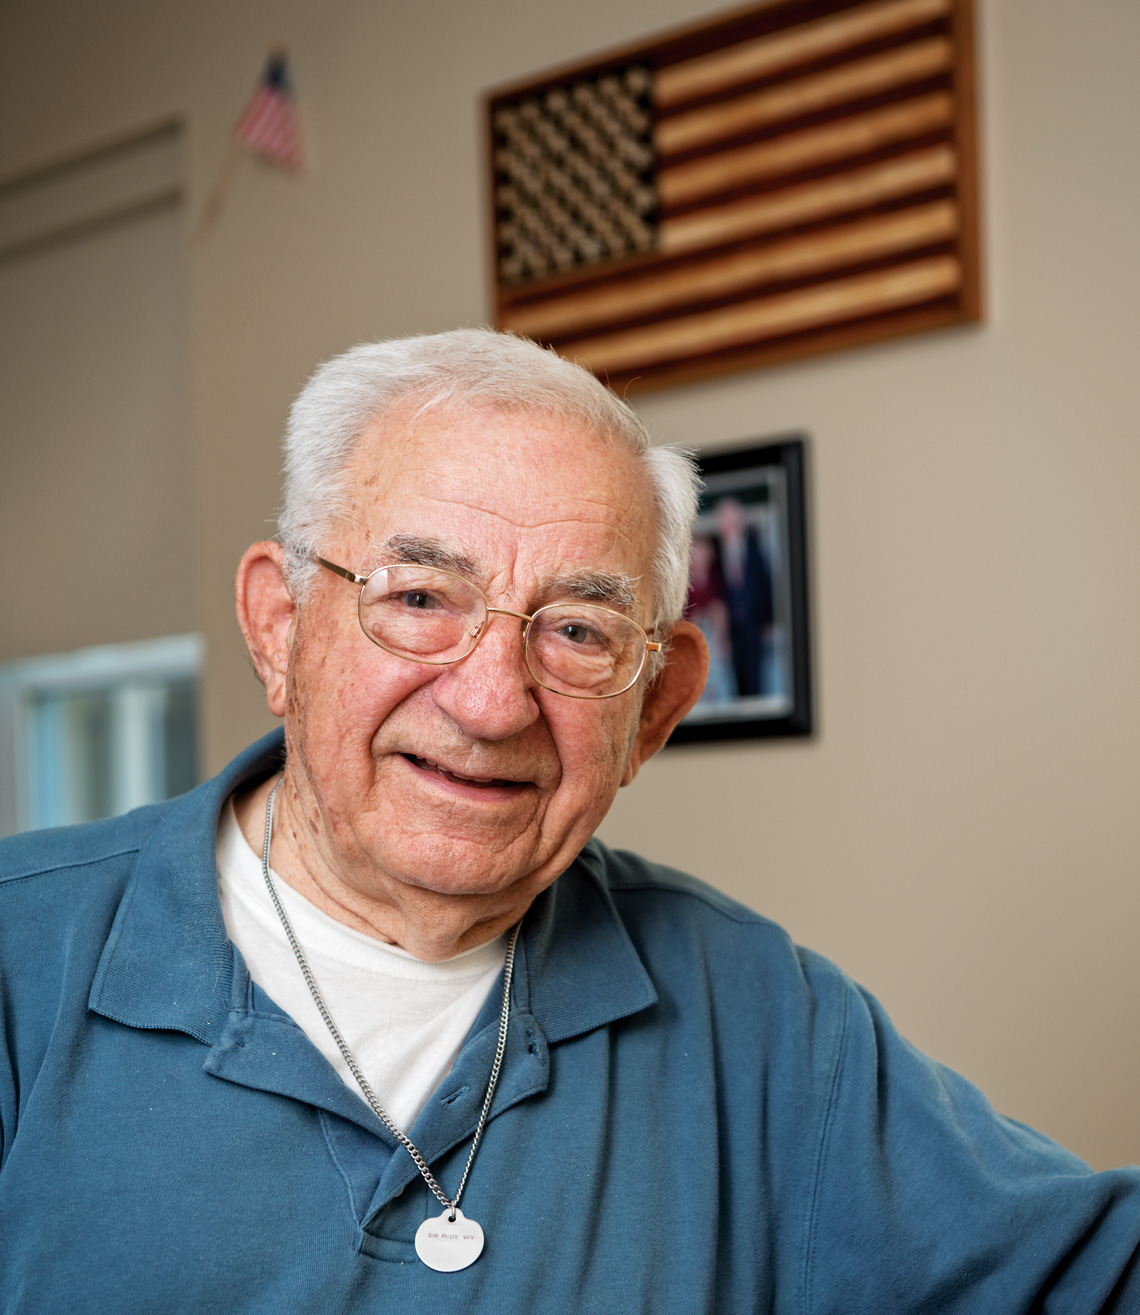 Mike Kaminsky, a 90-year-old World War II Army veteran. Photos by Adrien Bisson.